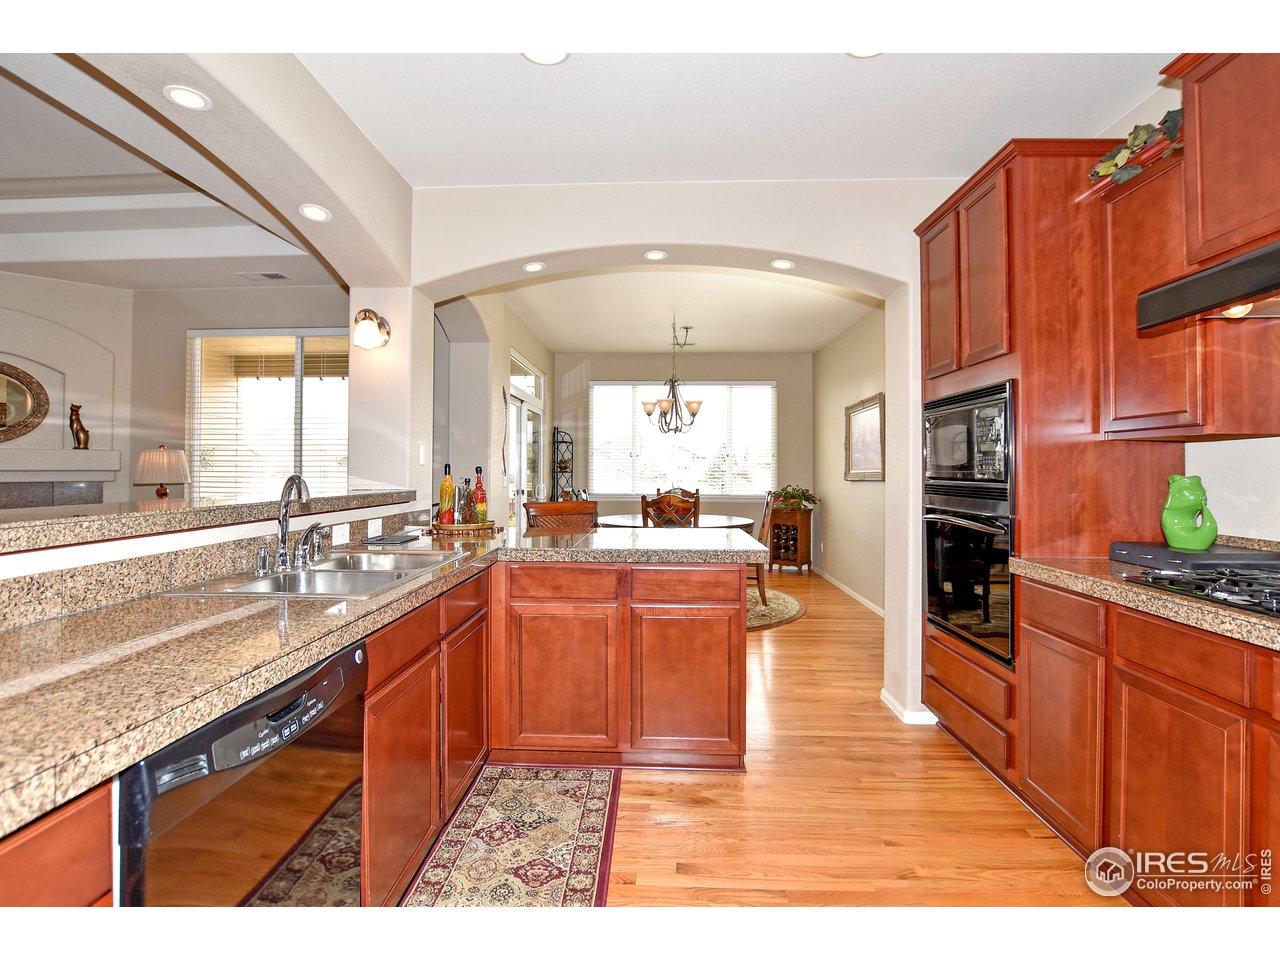 Hardwood floors in kitchen and dining areas